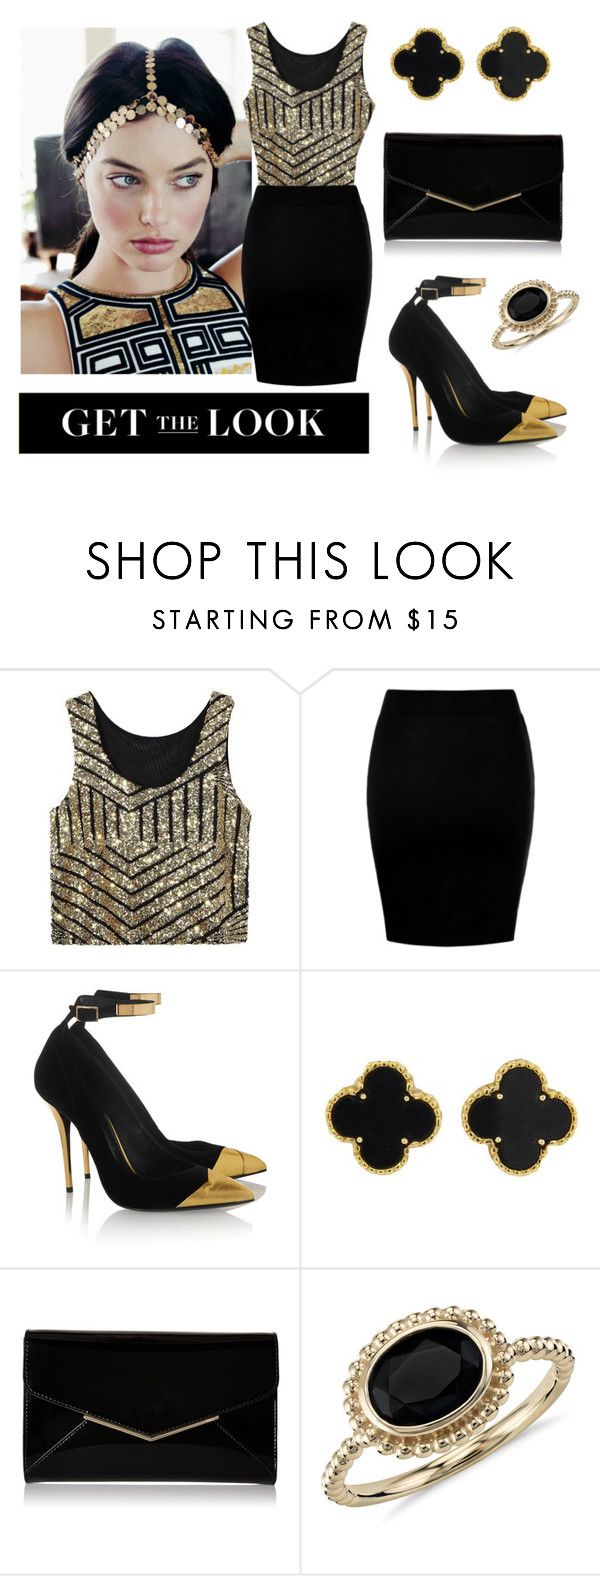 """""""Glitter Girl"""" by thoughts-of-thea ❤ liked on Polyvore featuring Balmain, Van Cleef & Arpels, Furla, Blue Nile, blackandgold, Luxe, aussie and margotrobbie"""